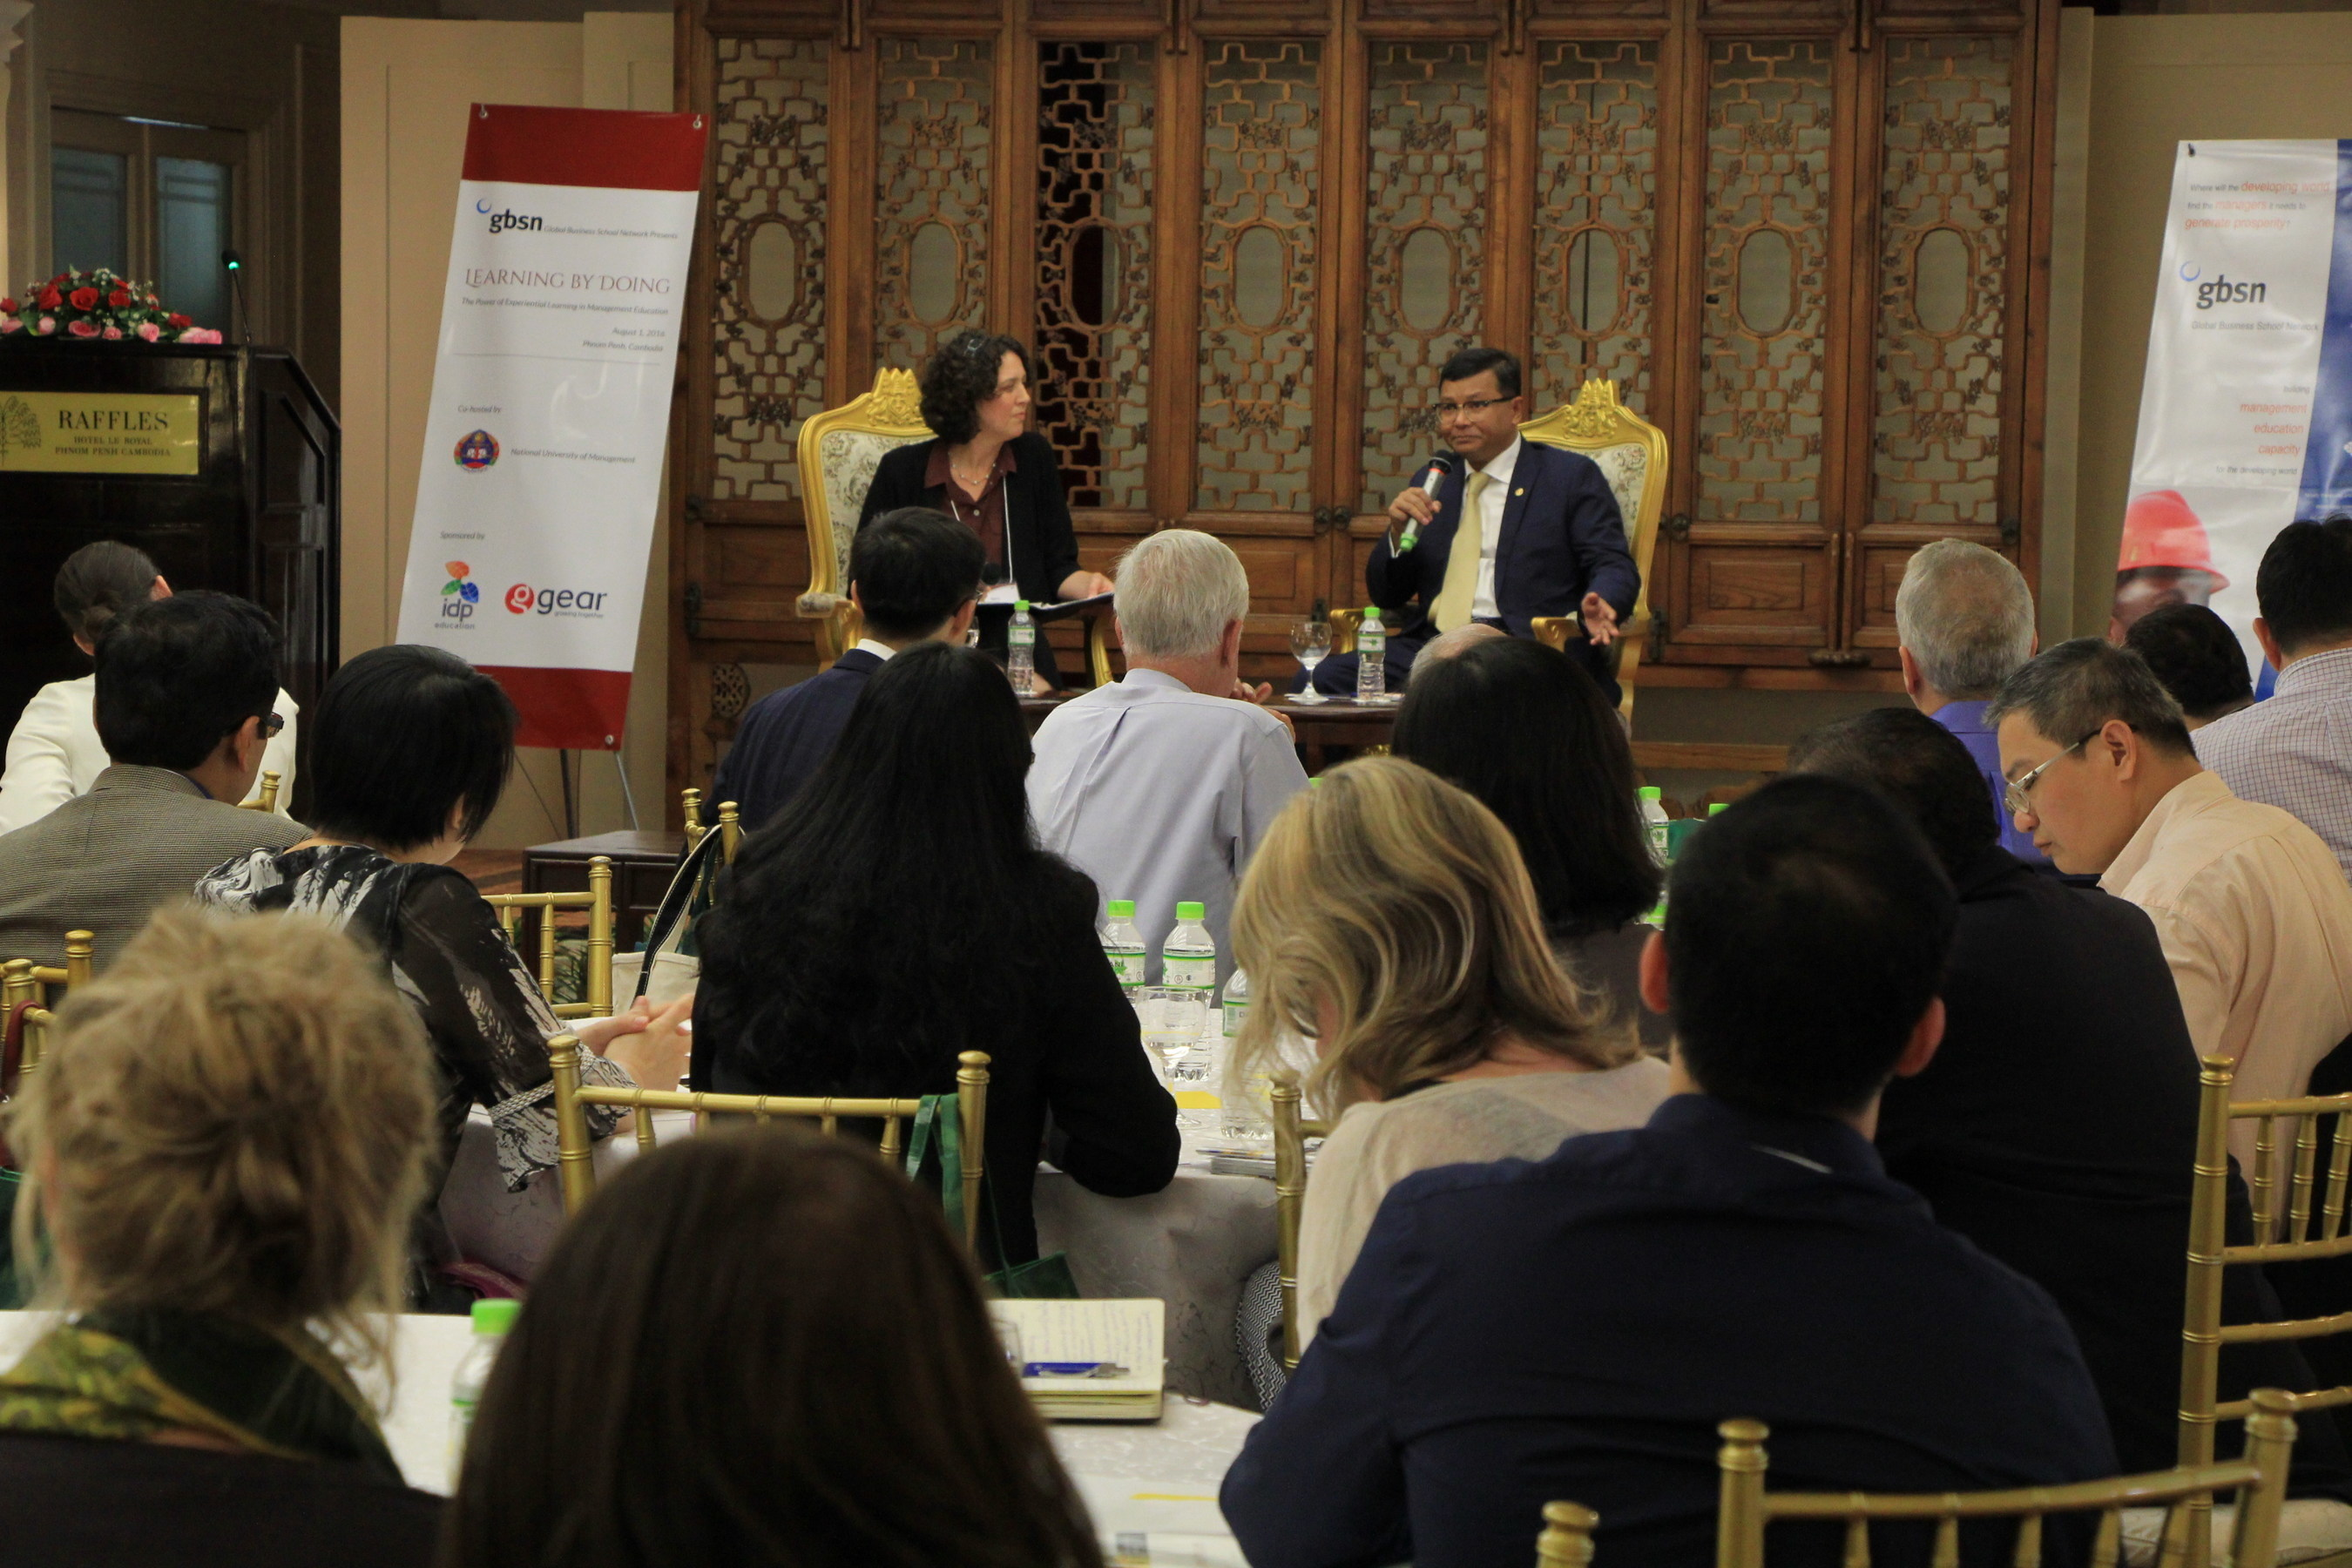 Kerry Laufer, Tuck School of Business at Dartmouth interviews H.E. Dr. Hang Chauon Naron, Minister of Education Youth and Sport, Cambodia for the Keynote Discussion